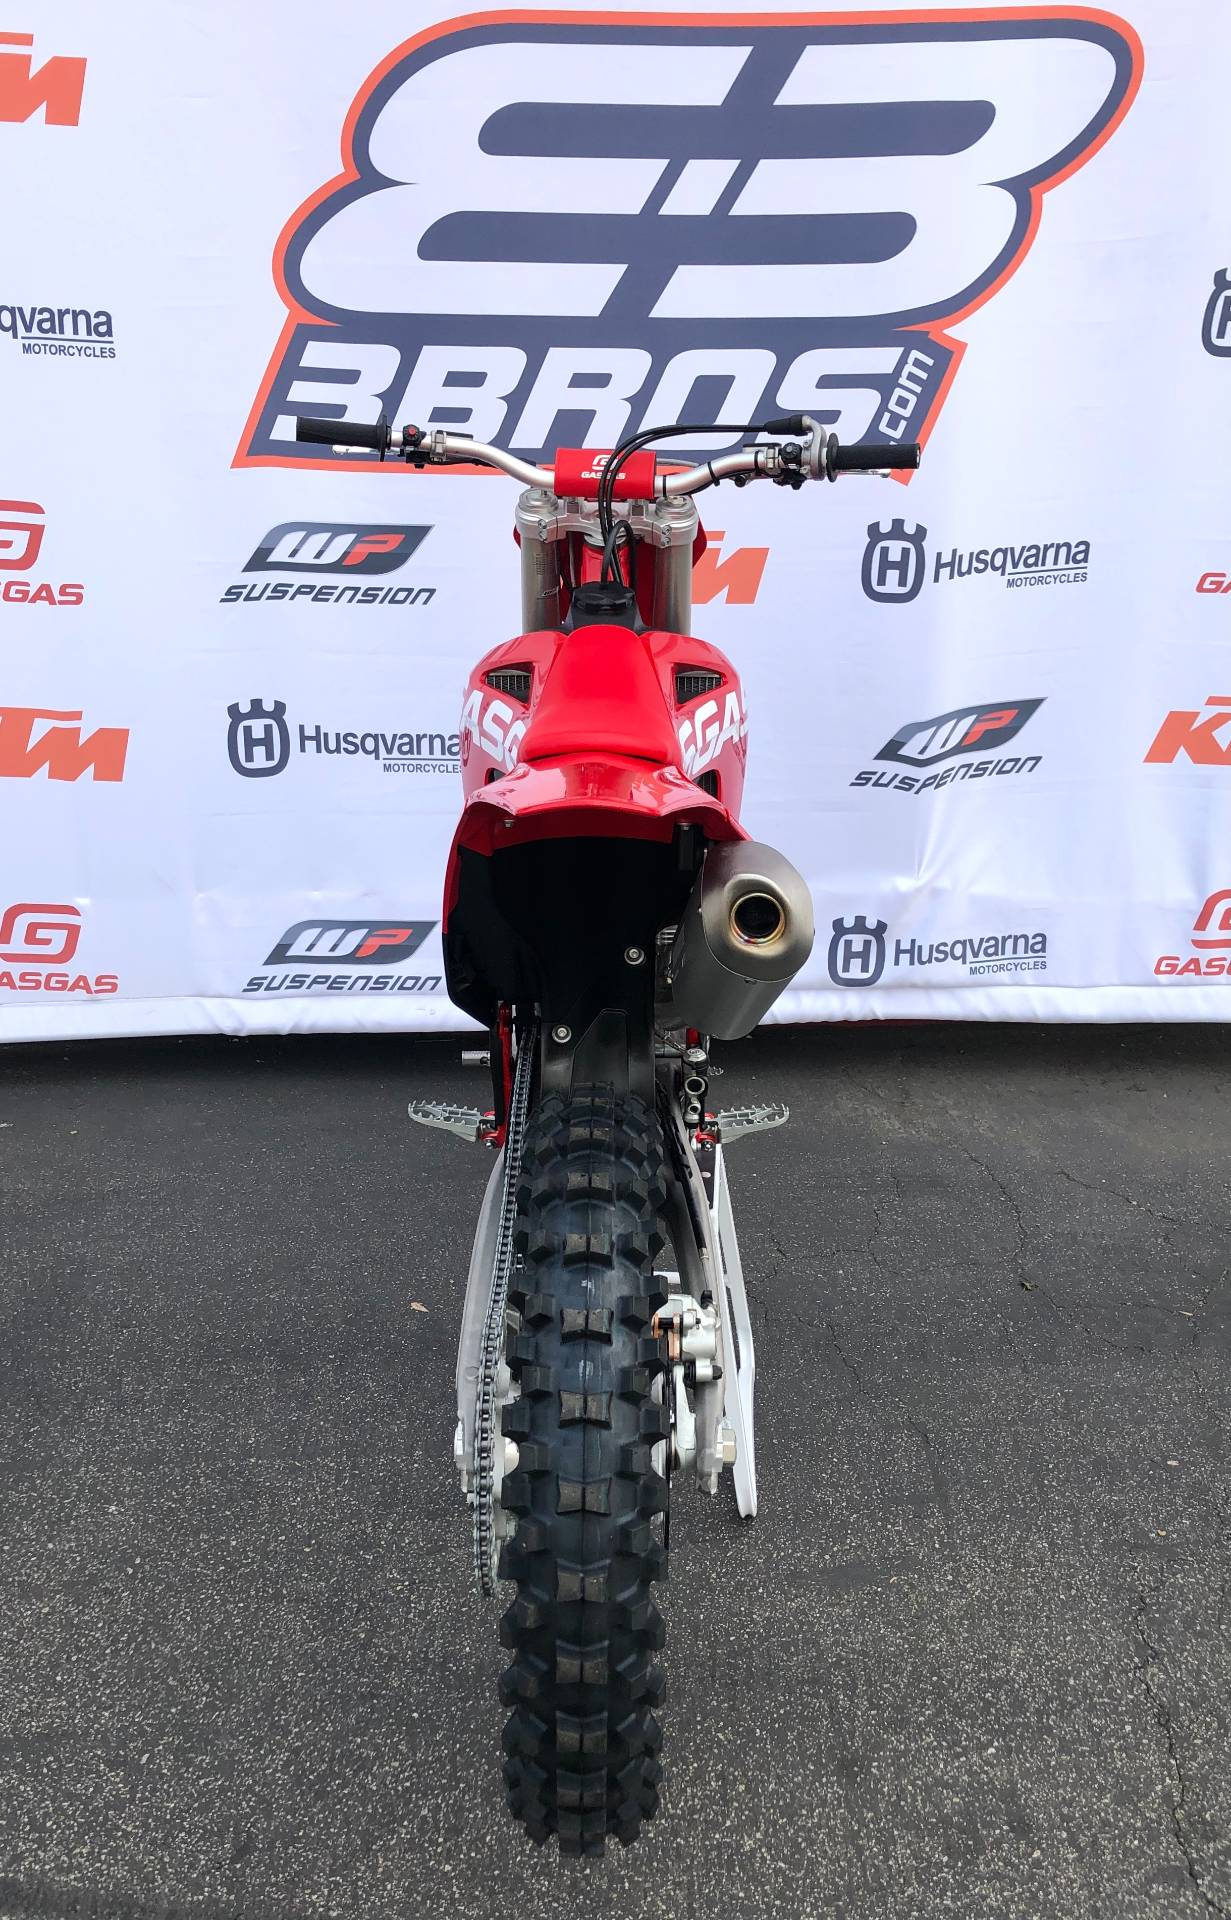 2021 Gas Gas MC 250F in Costa Mesa, California - Photo 6